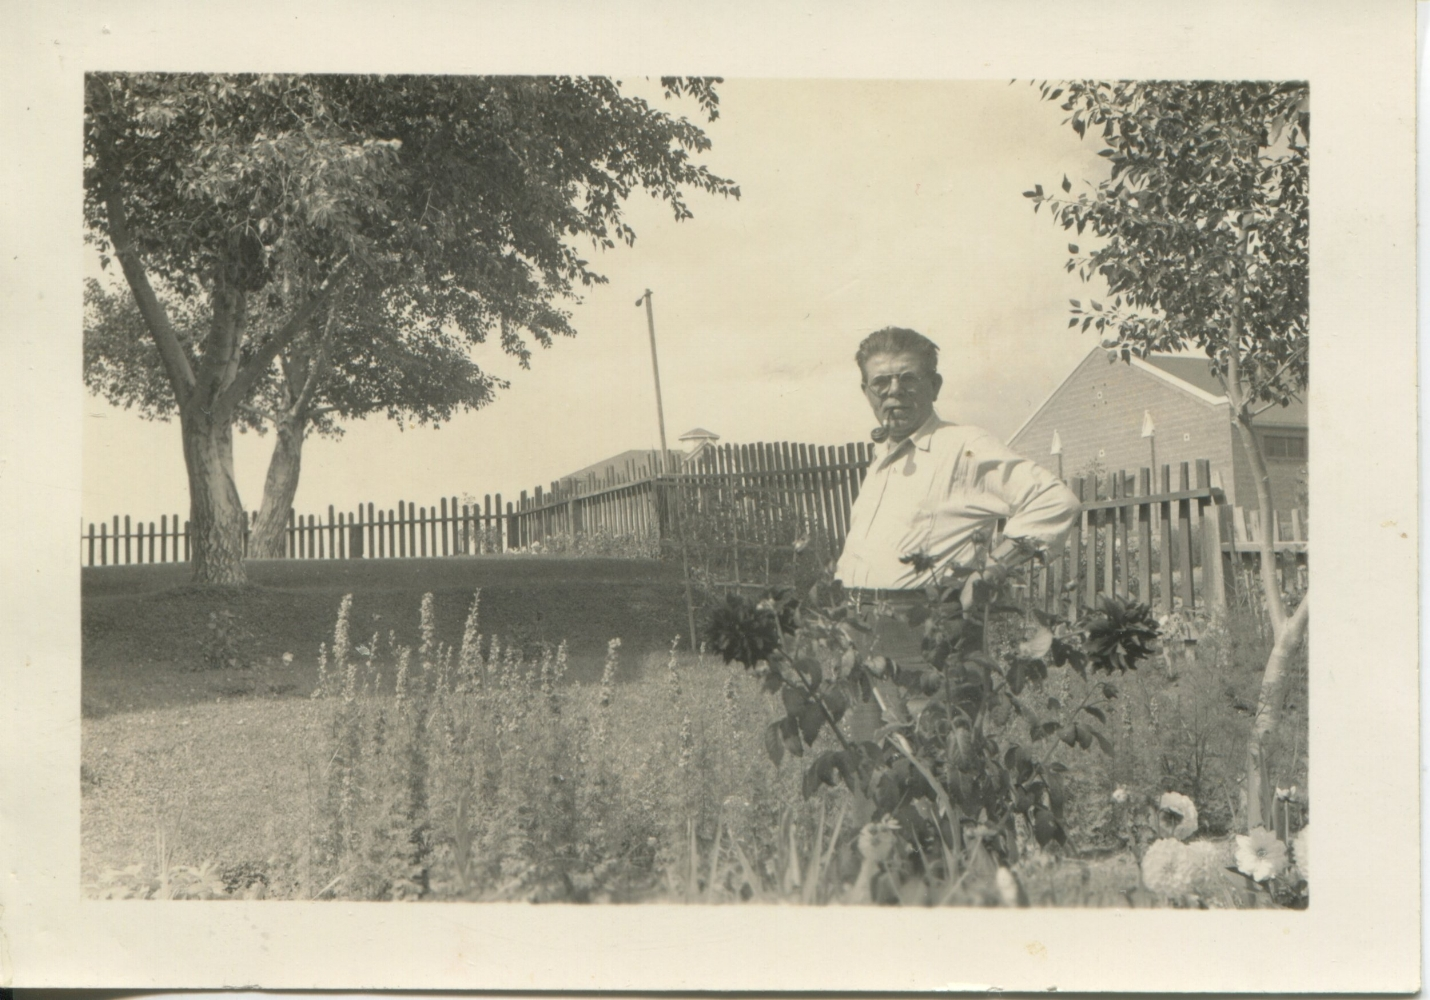 Edward Vollack surveying his yard in Reliance, Wyoming.